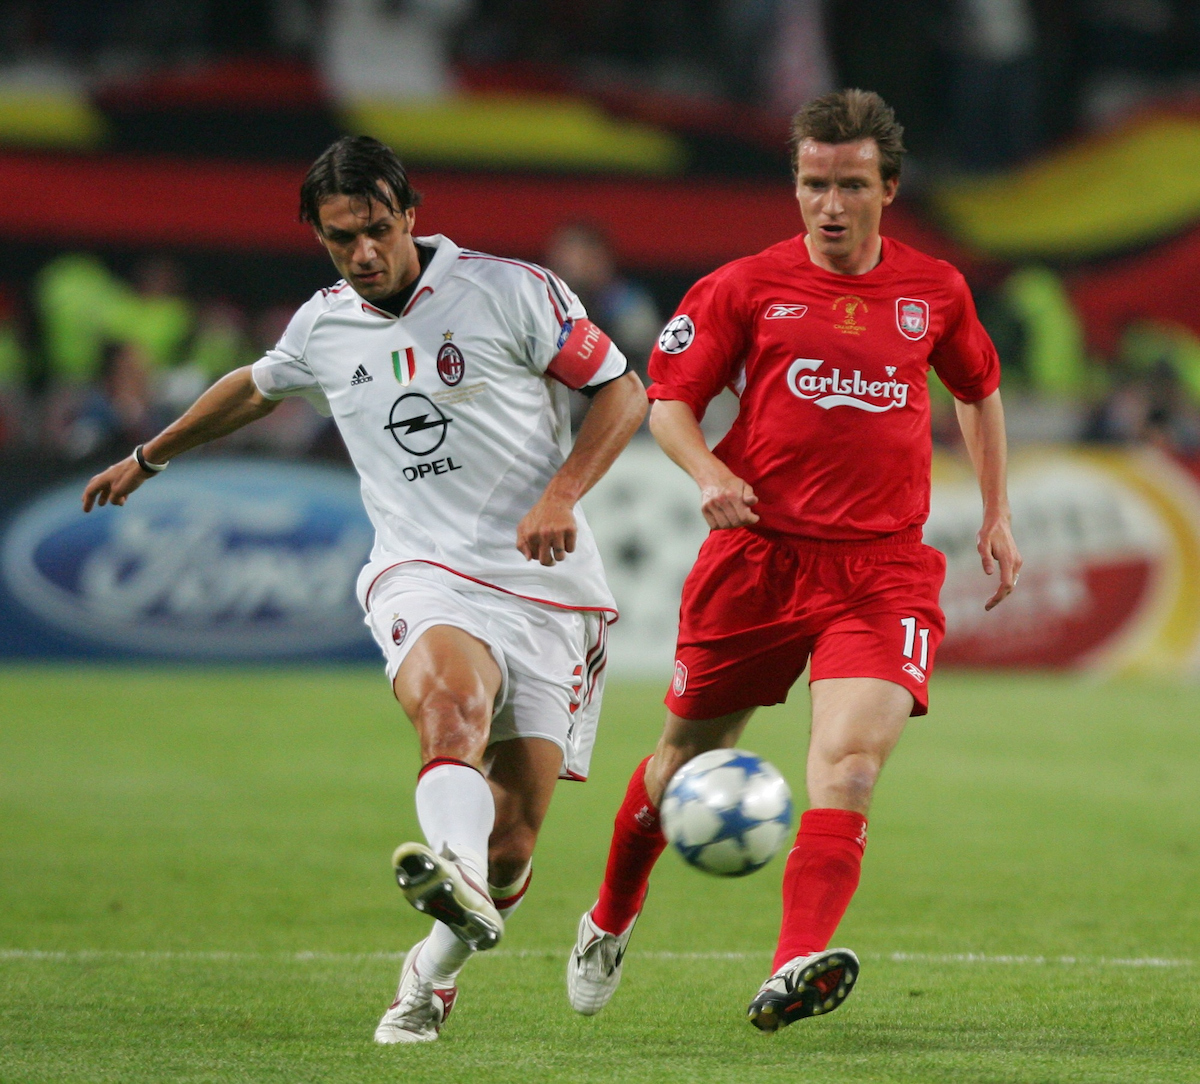 ISTANBUL, TURKEY - WEDNESDAY, MAY 25th, 2005: Liverpool's Vladimir Smicer and AC Milan's Paulo Maldini during the UEFA Champions League Final at the Ataturk Olympic Stadium, Istanbul. (Pic by David Rawcliffe/Propaganda)